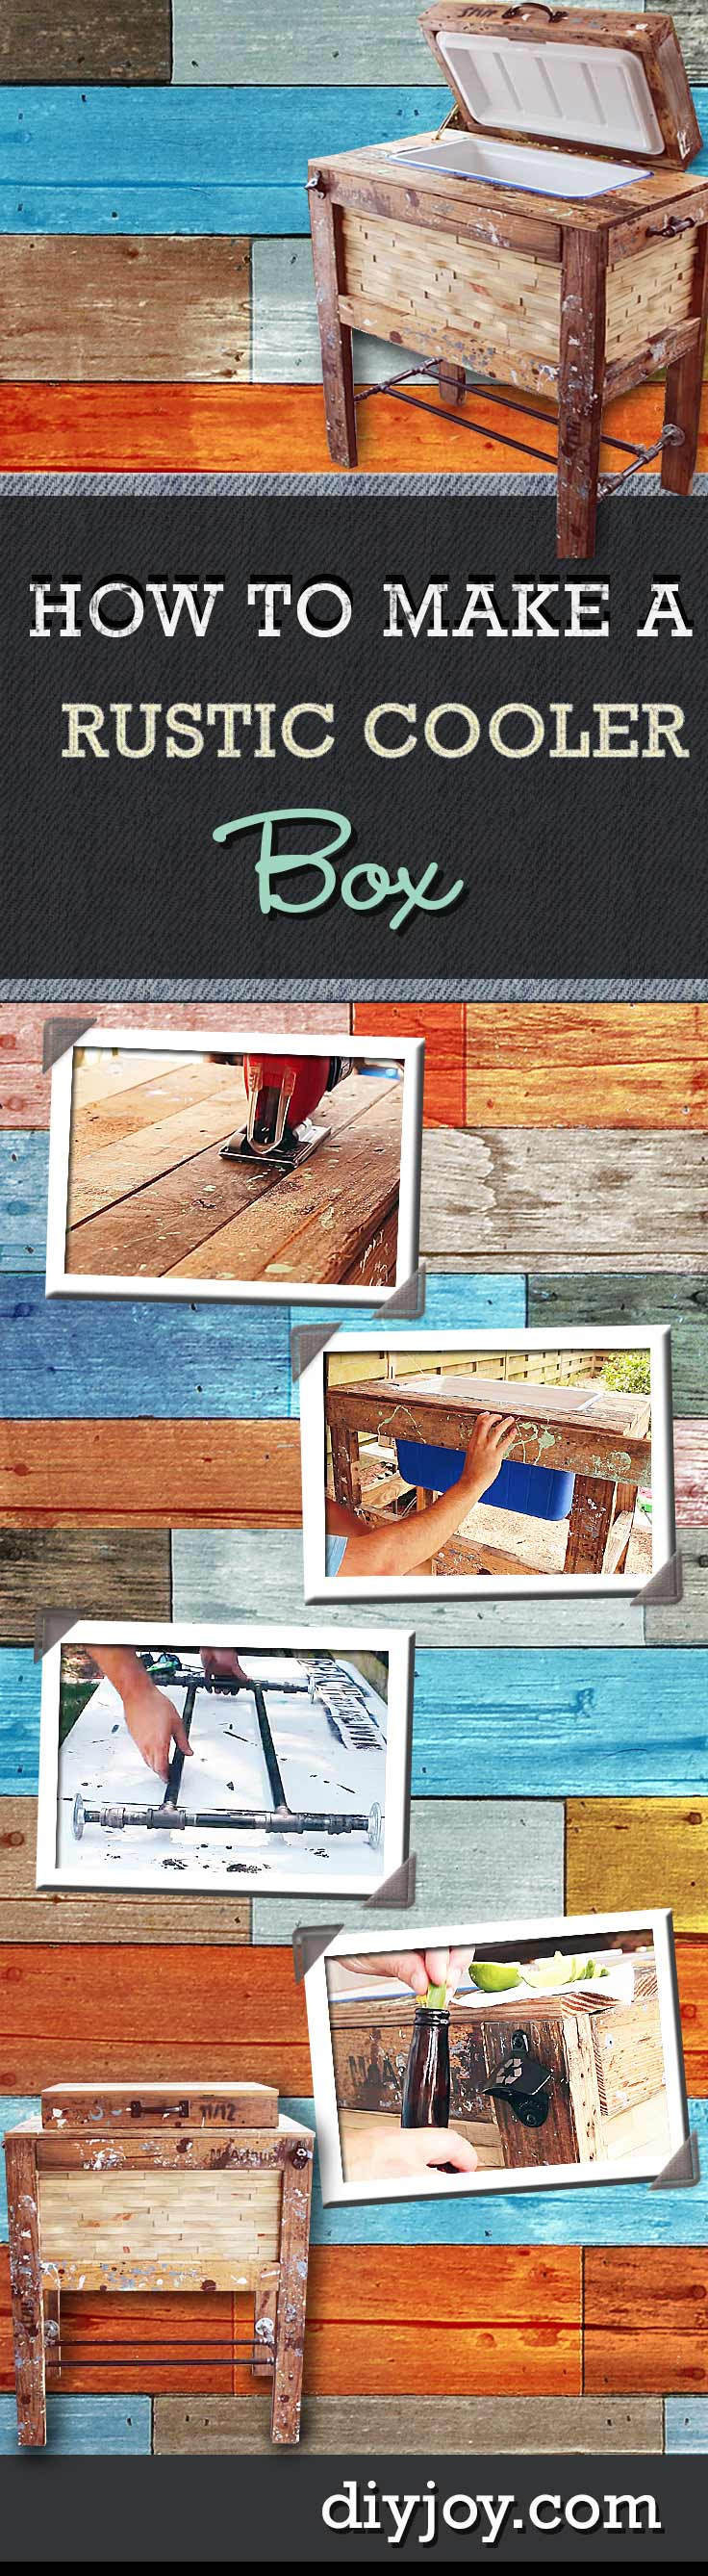 DIY Pallet Furniture Ideas - Rustic Cooler Box - Best Do It Yourself Projects Made With Wooden Pallets - Indoor and Outdoor, Bedroom, Living Room, Patio. Coffee Table, Couch, Dining Tables, Shelves, Racks and Benches http://diyjoy.com/diy-pallet-furniture-projects